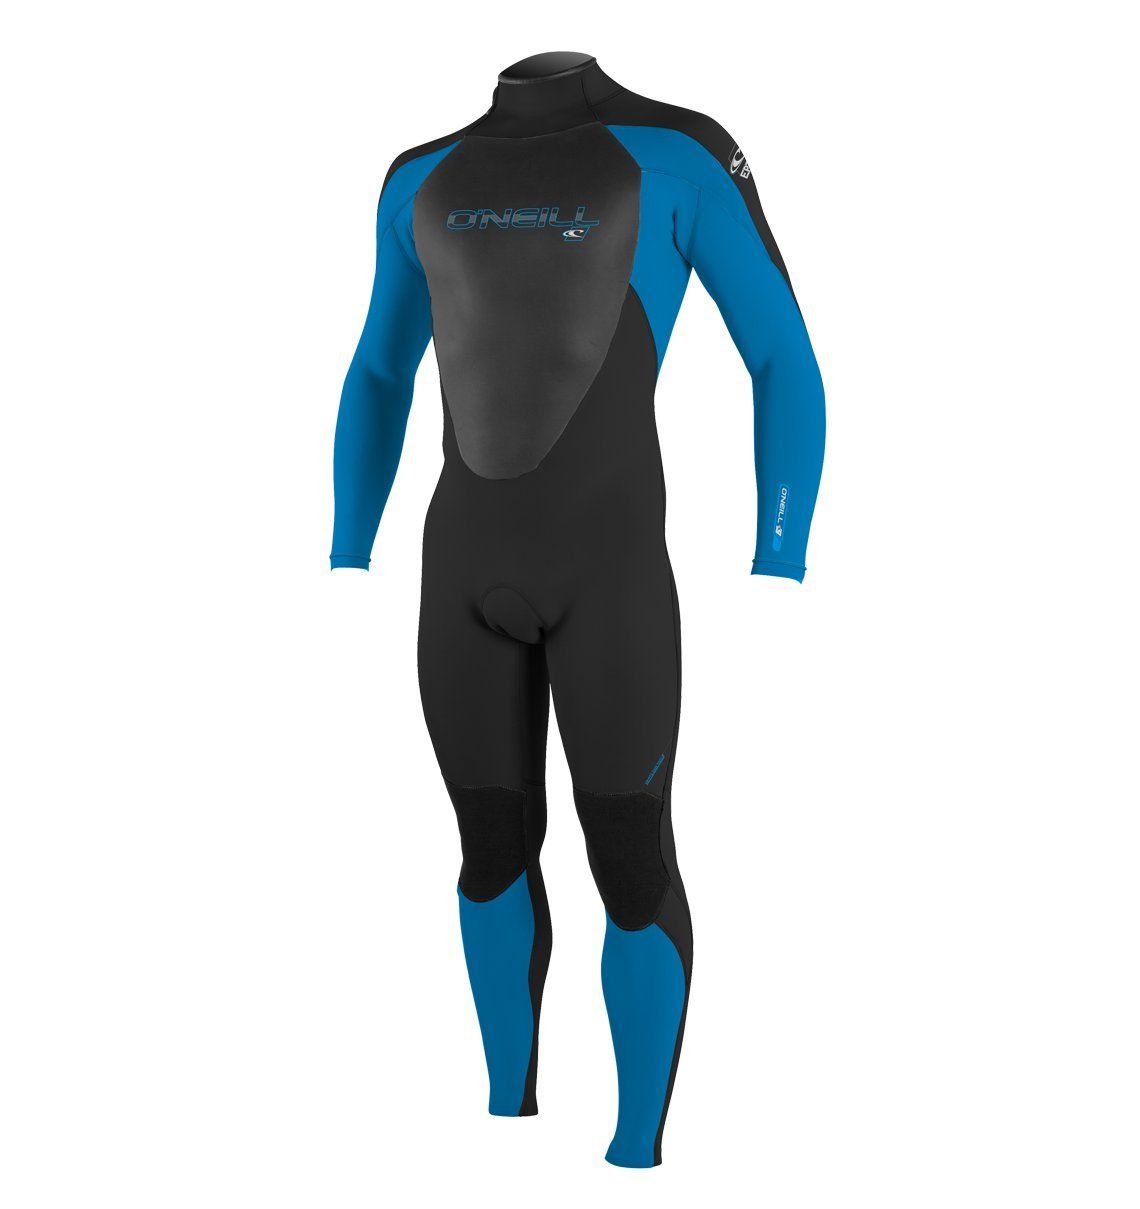 O'Neill Wetsuits Men's Epic 4/3mm Back Zip Full Wetsuit, Black/BrightBlue, Small